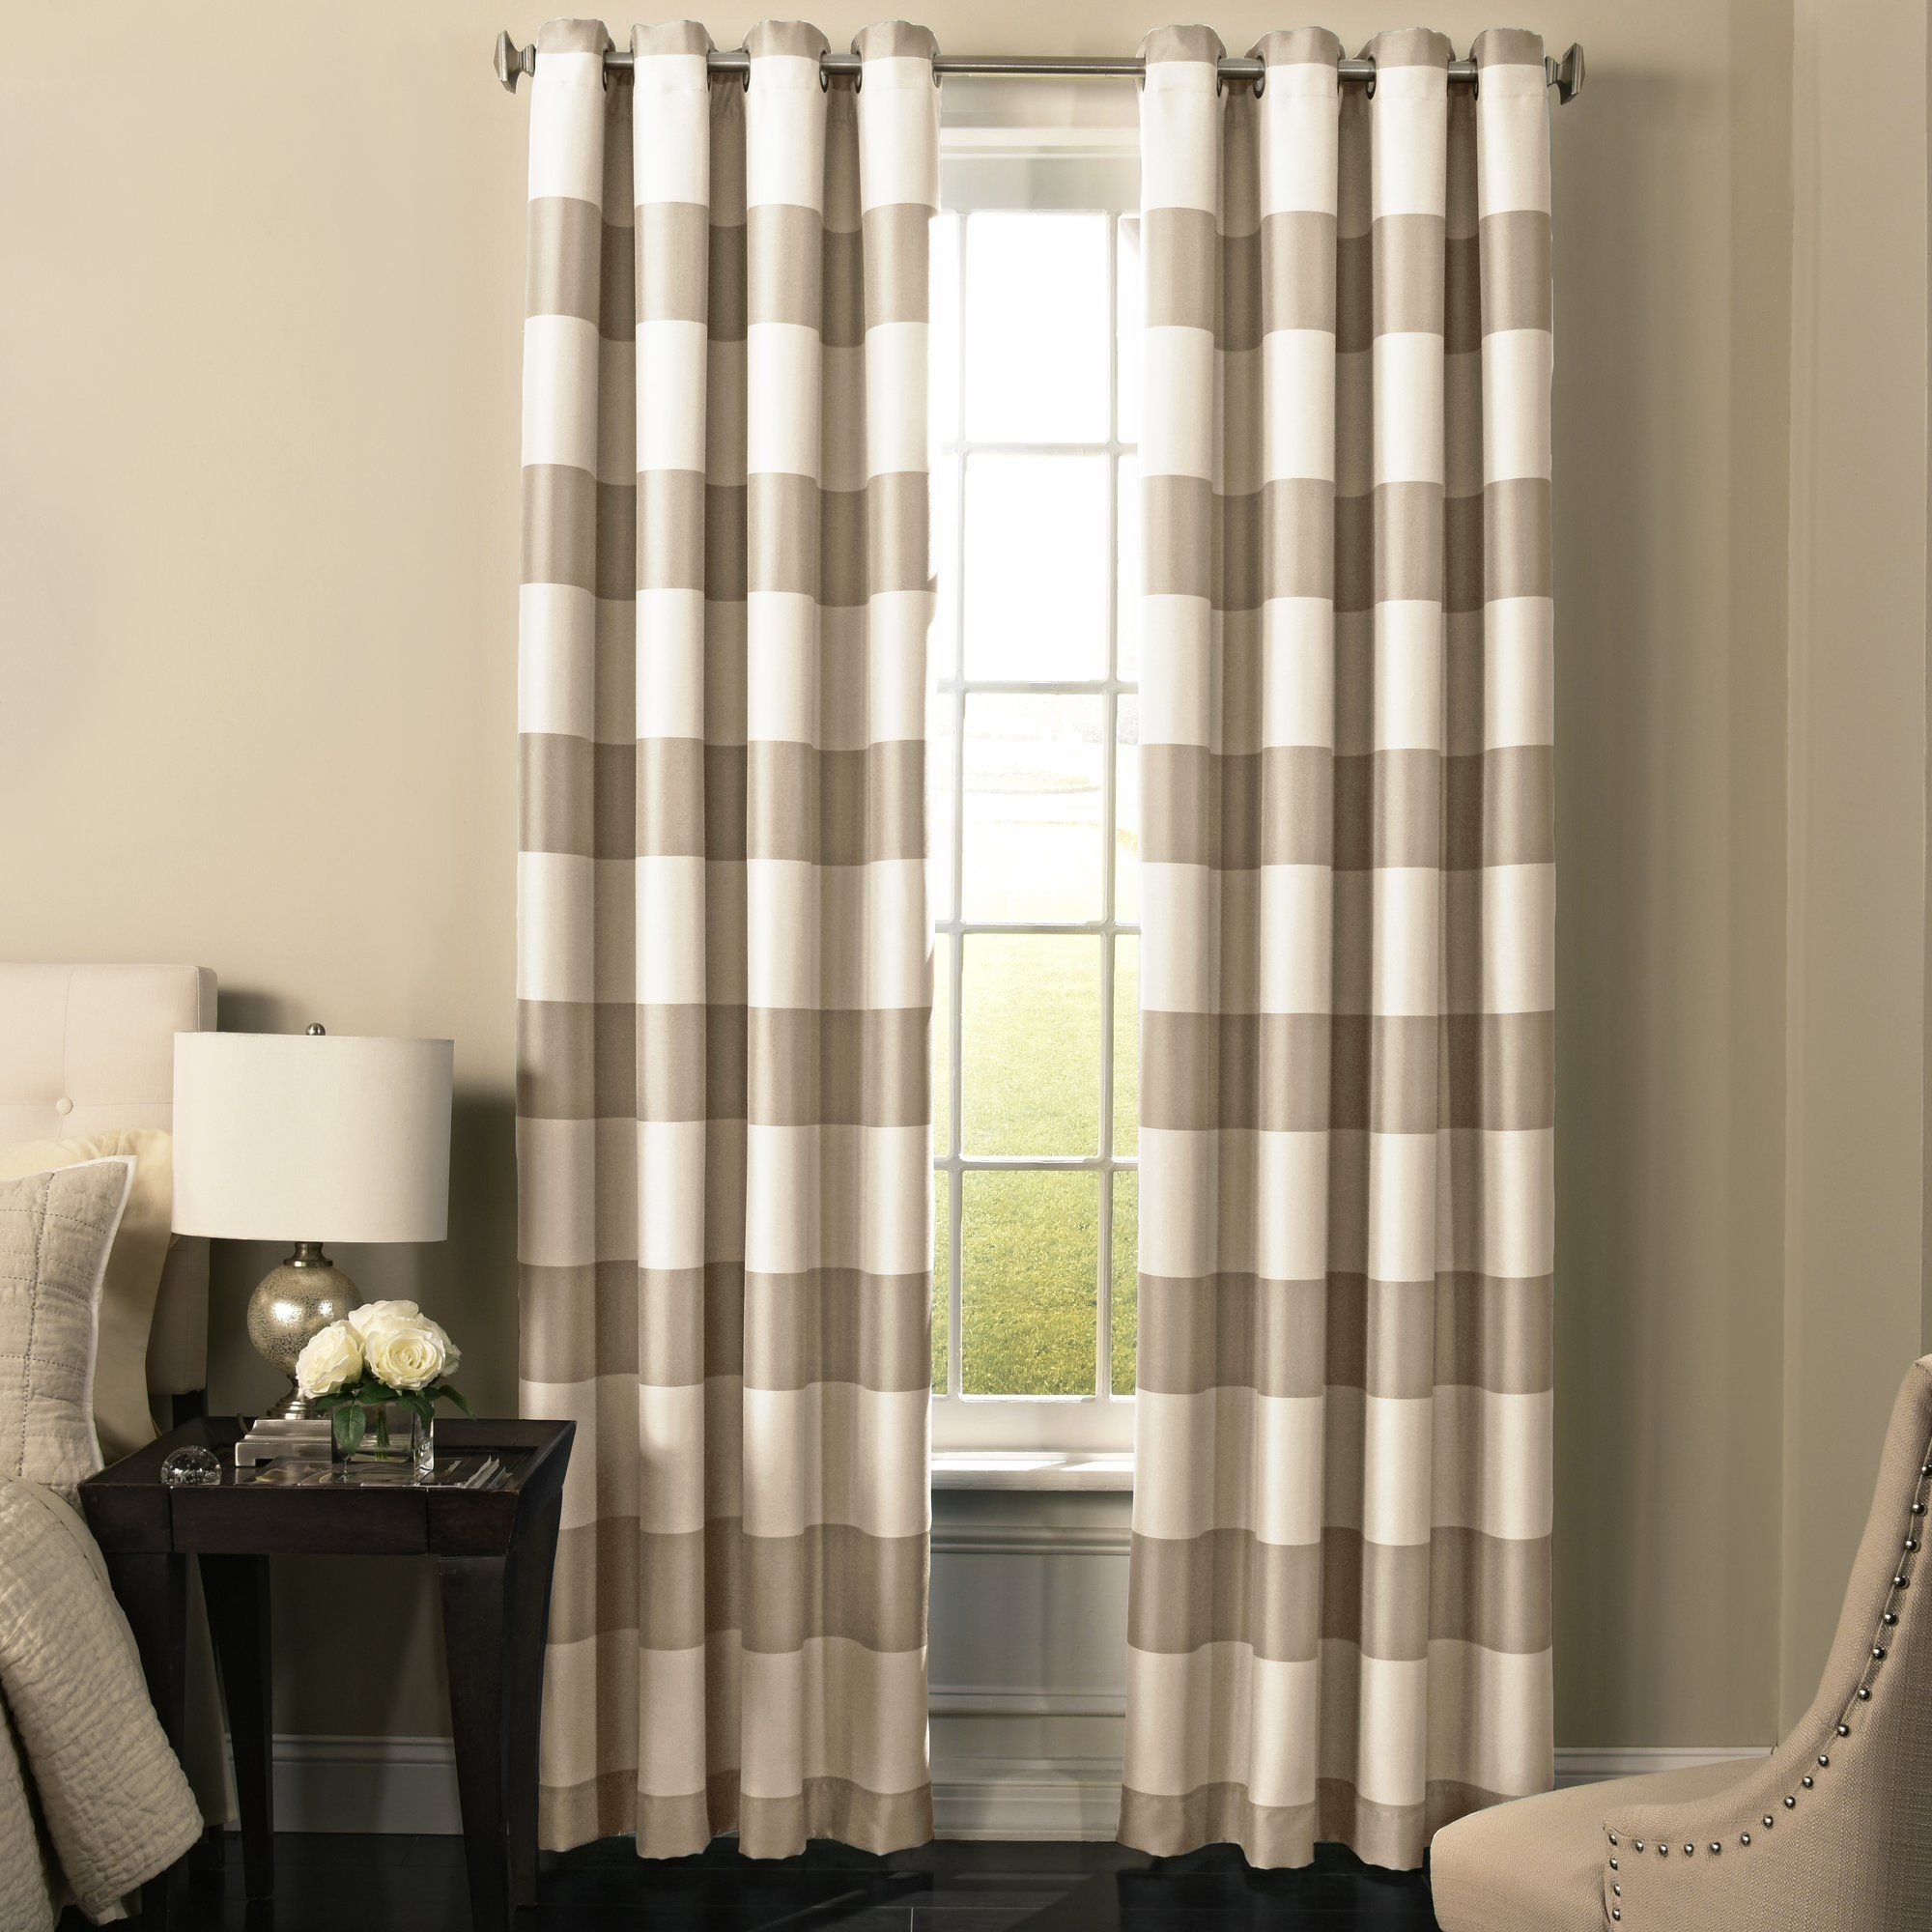 Living Room Curtains | New House - Mom/Dad | Pinterest | Living room ...